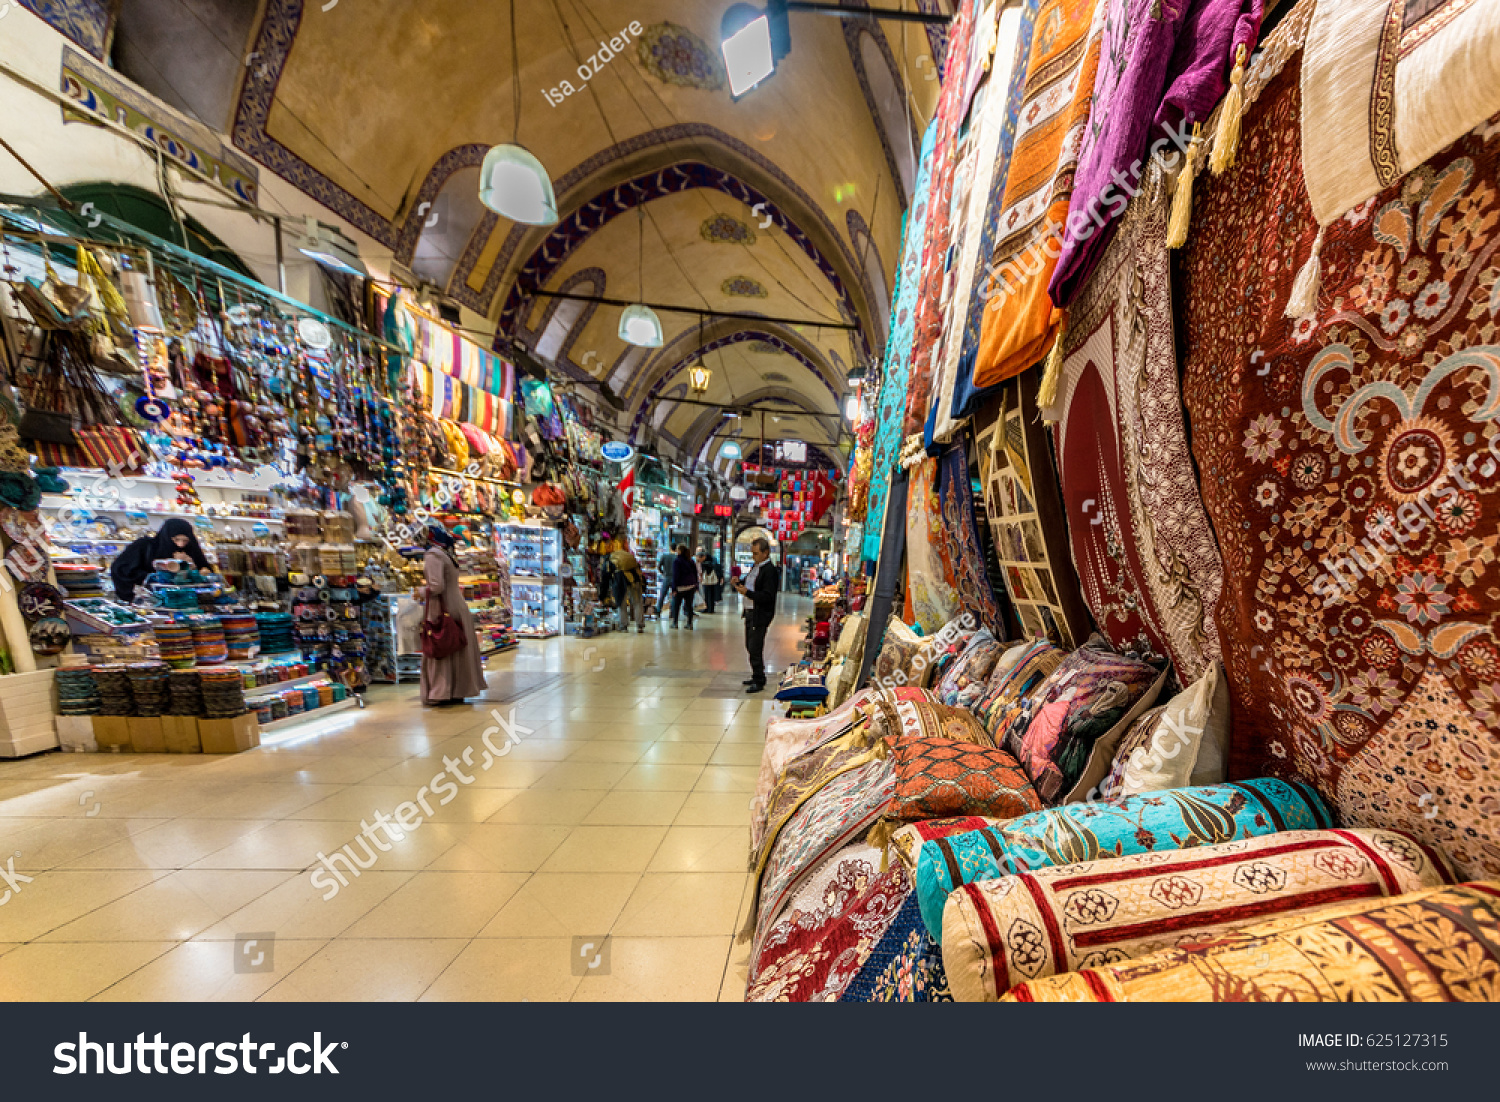 Shopping in Istanbul: reviews of tourists 53